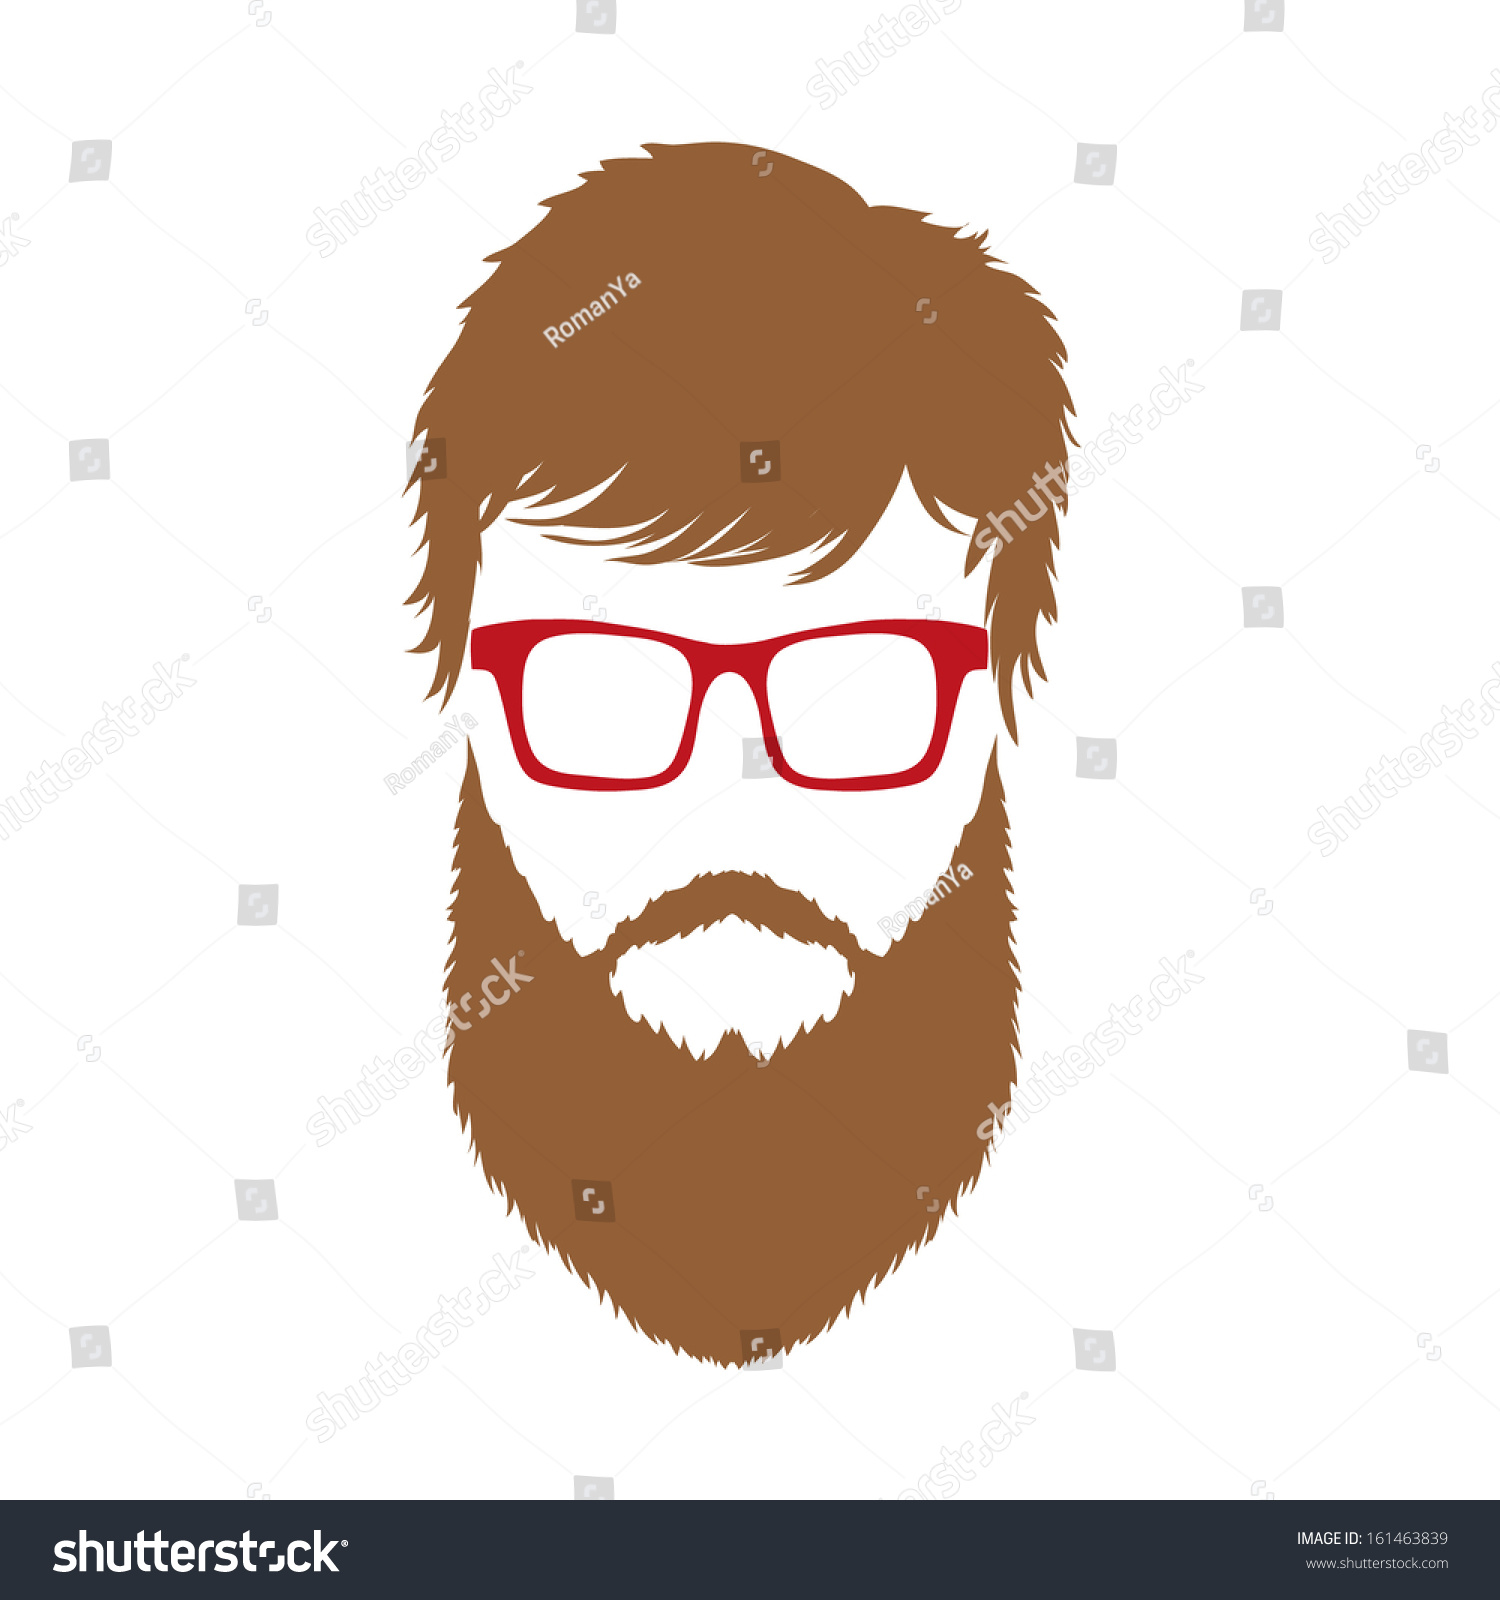 Fashion Silhouette Hipster Style Vector Illustration 161463839 Shutterstock